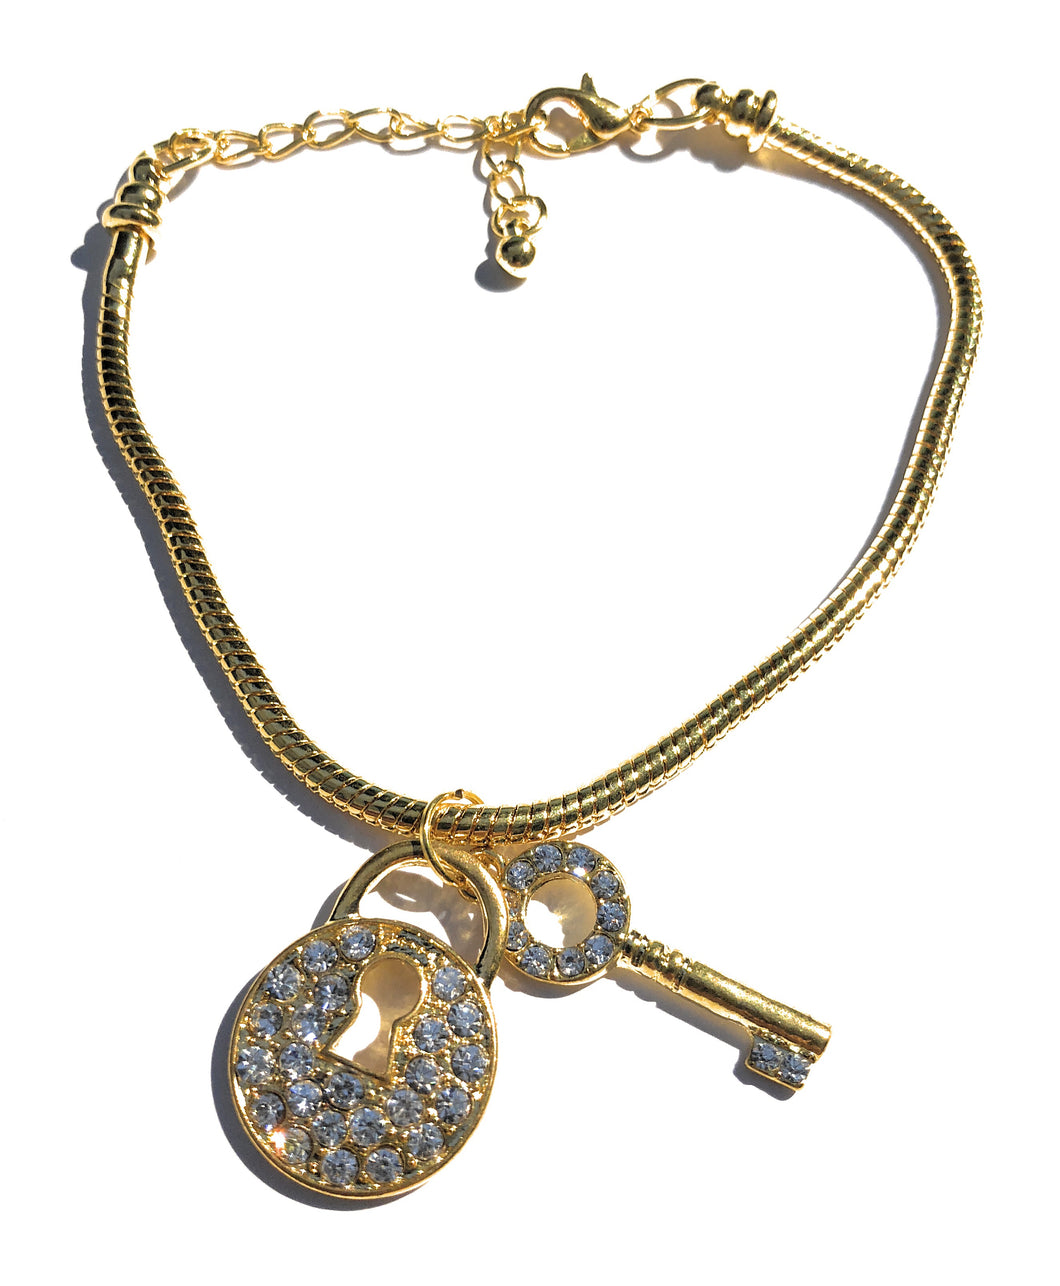 Austrian Crystal Queen Of Spades - LOCK AND KEY - Gold Anklet